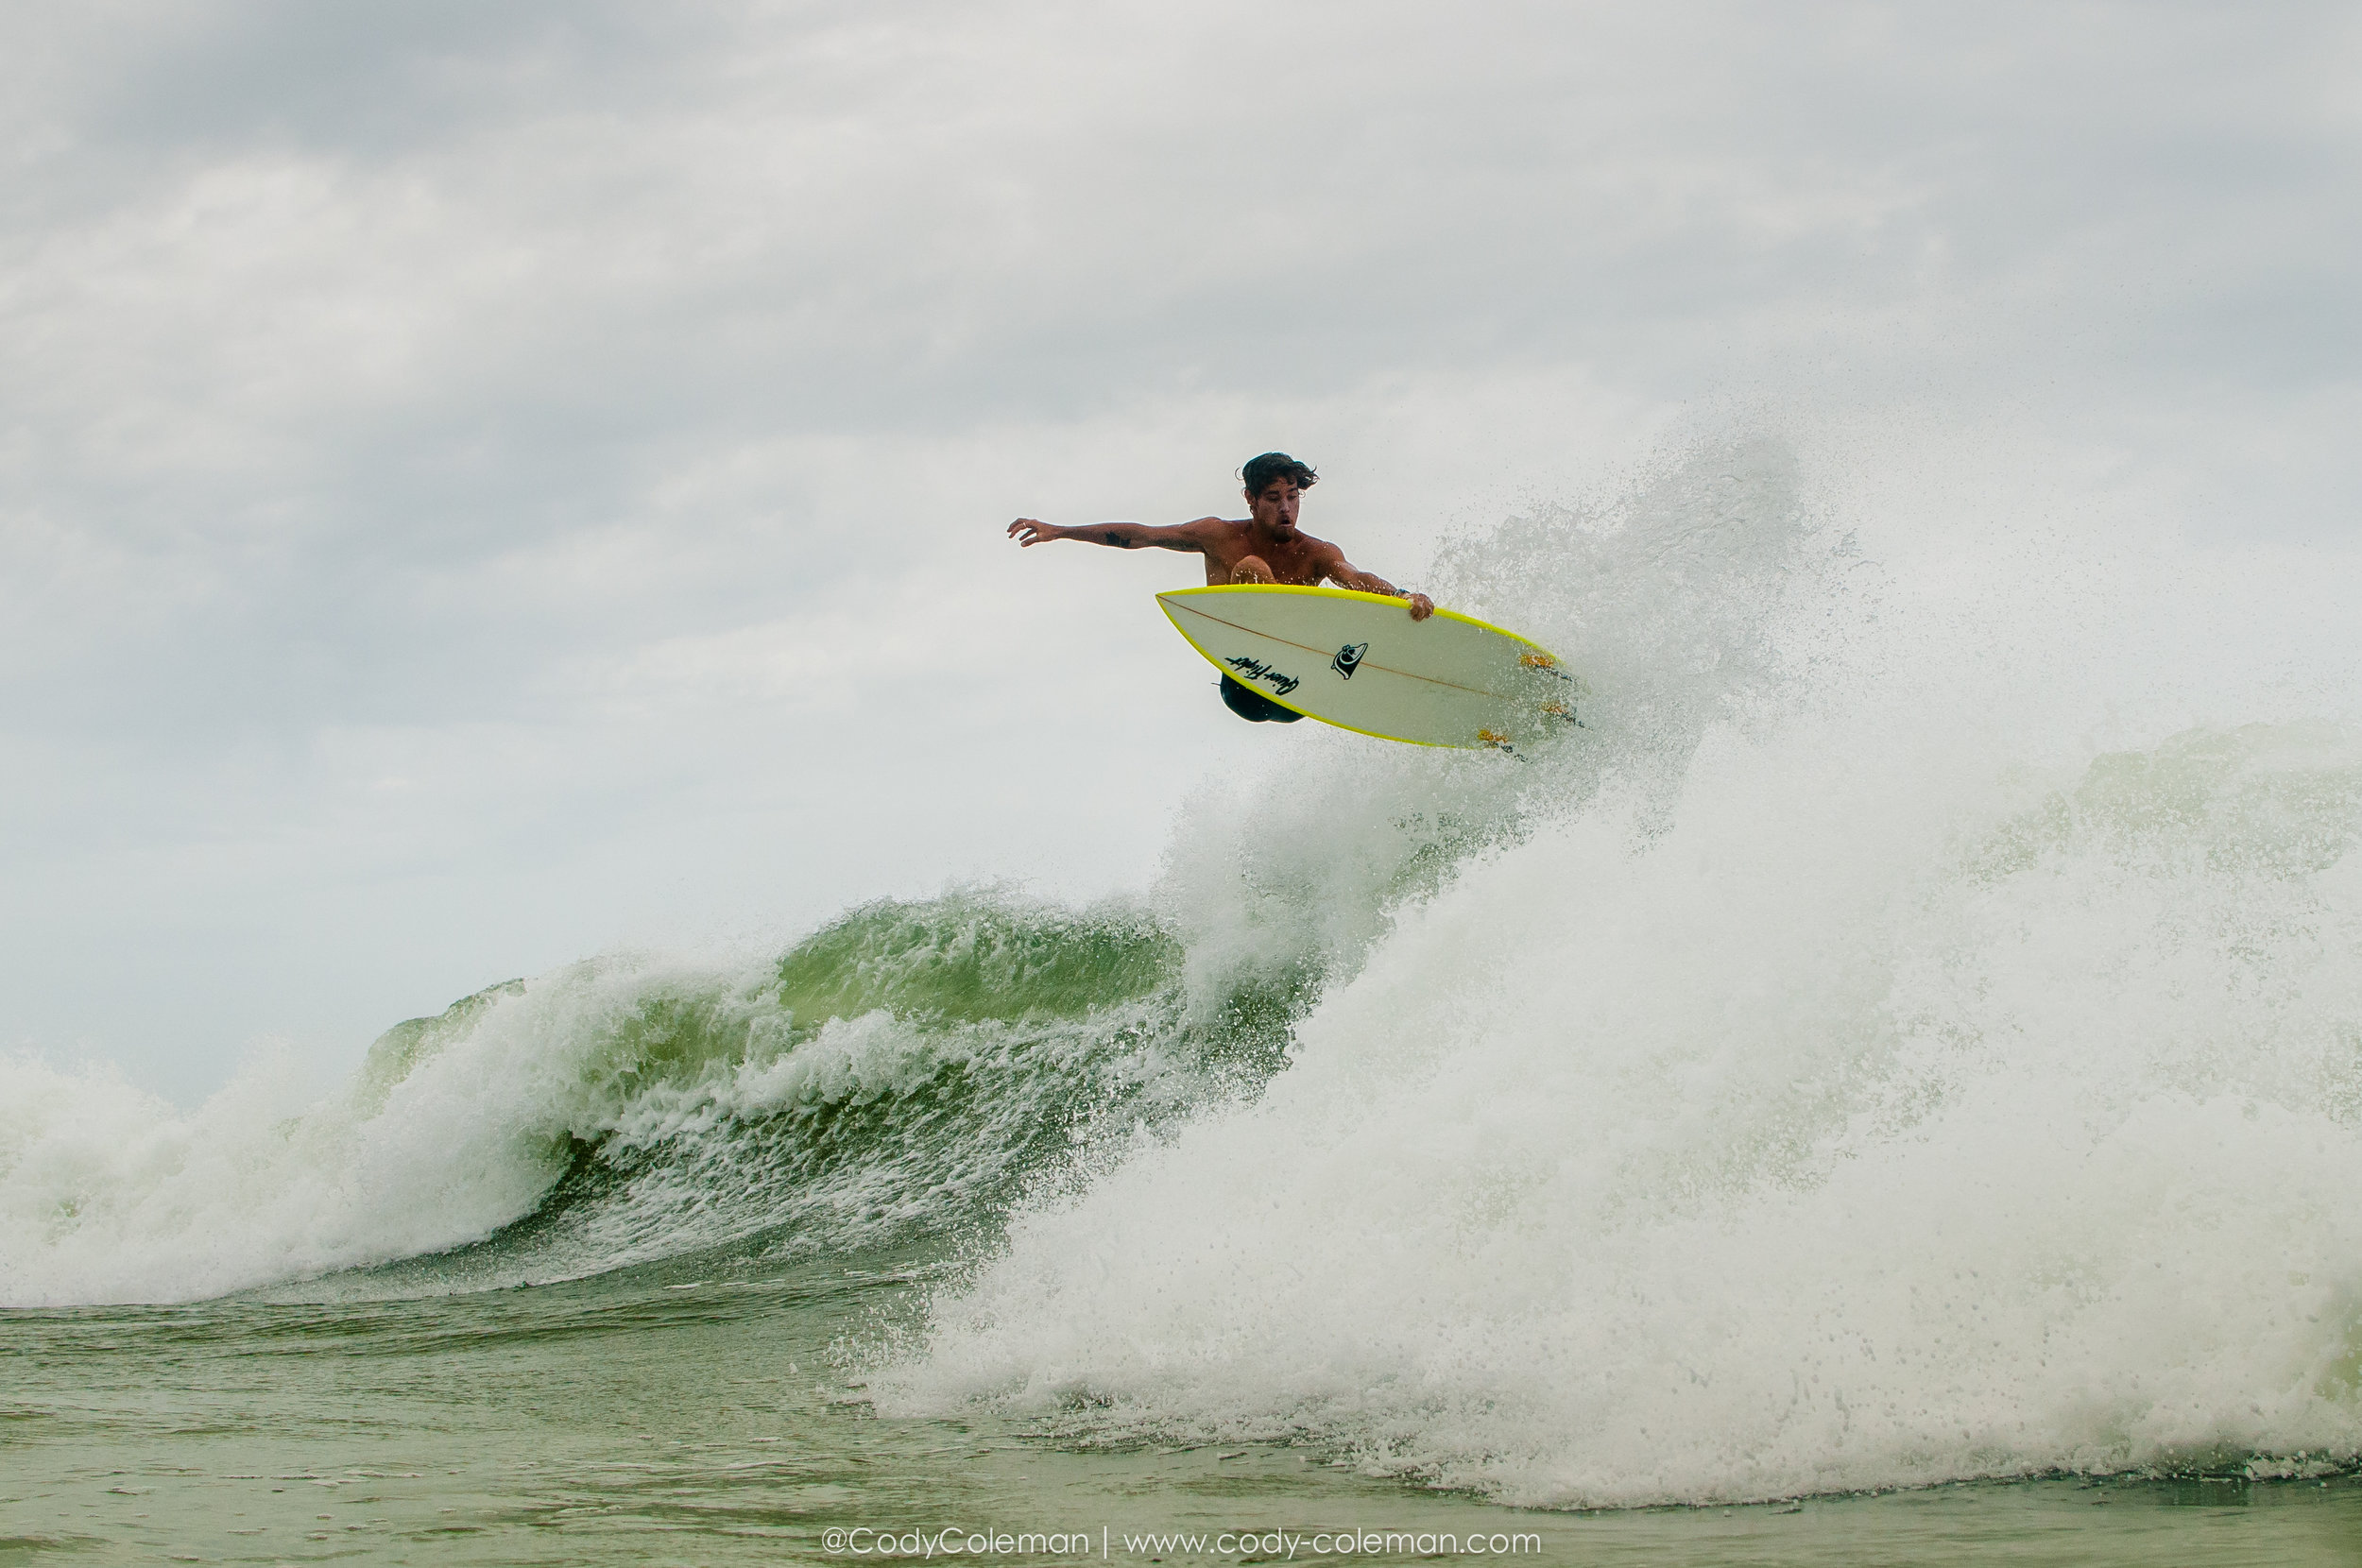 Tubes, Air sections, Open Faces, Alec found them all...